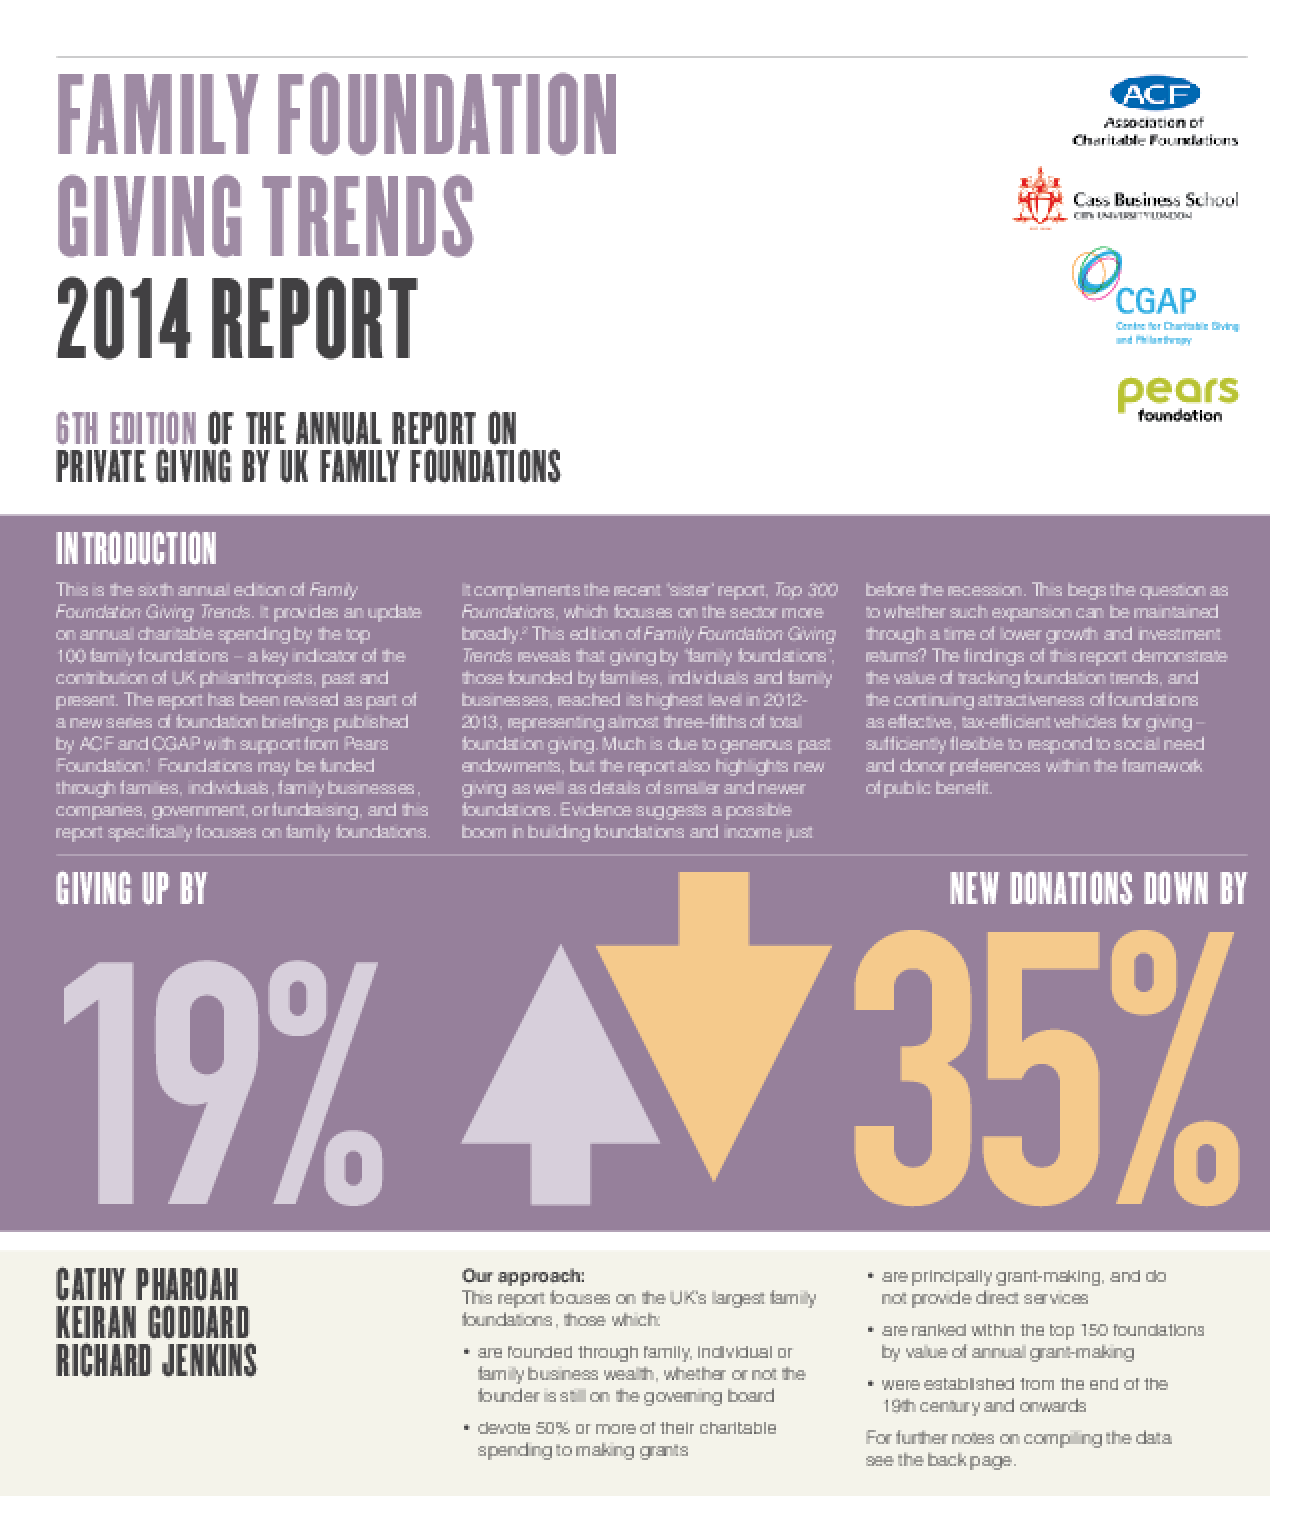 Family Foundation Giving Trends 2014